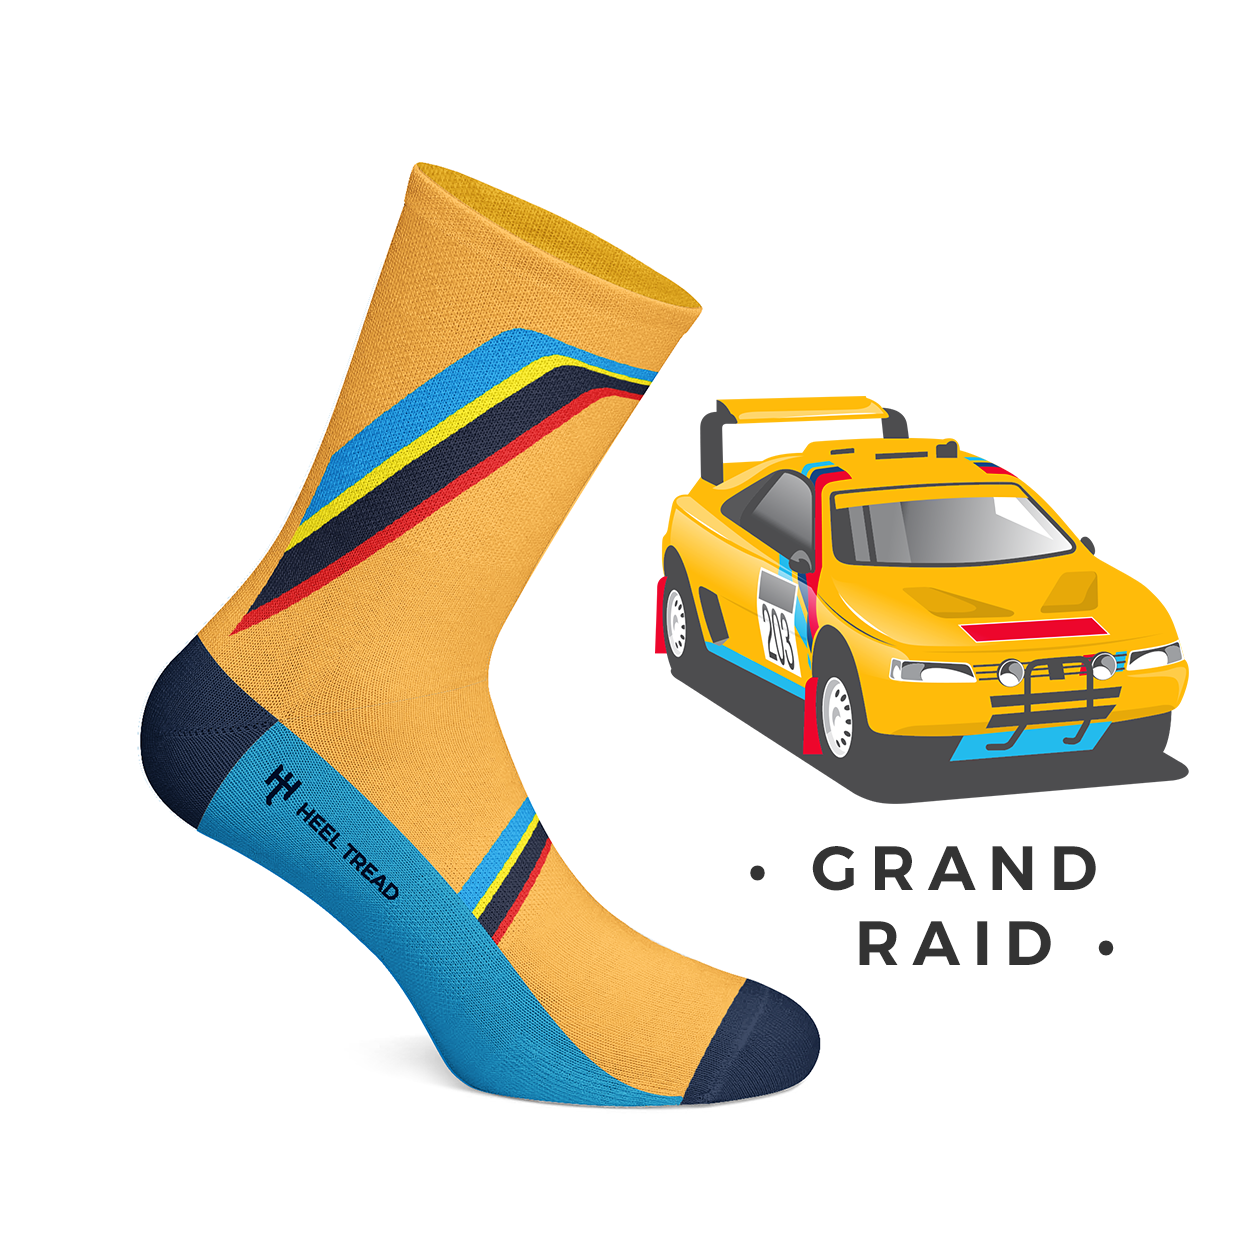 Heel Tread - Grand Raid Socks